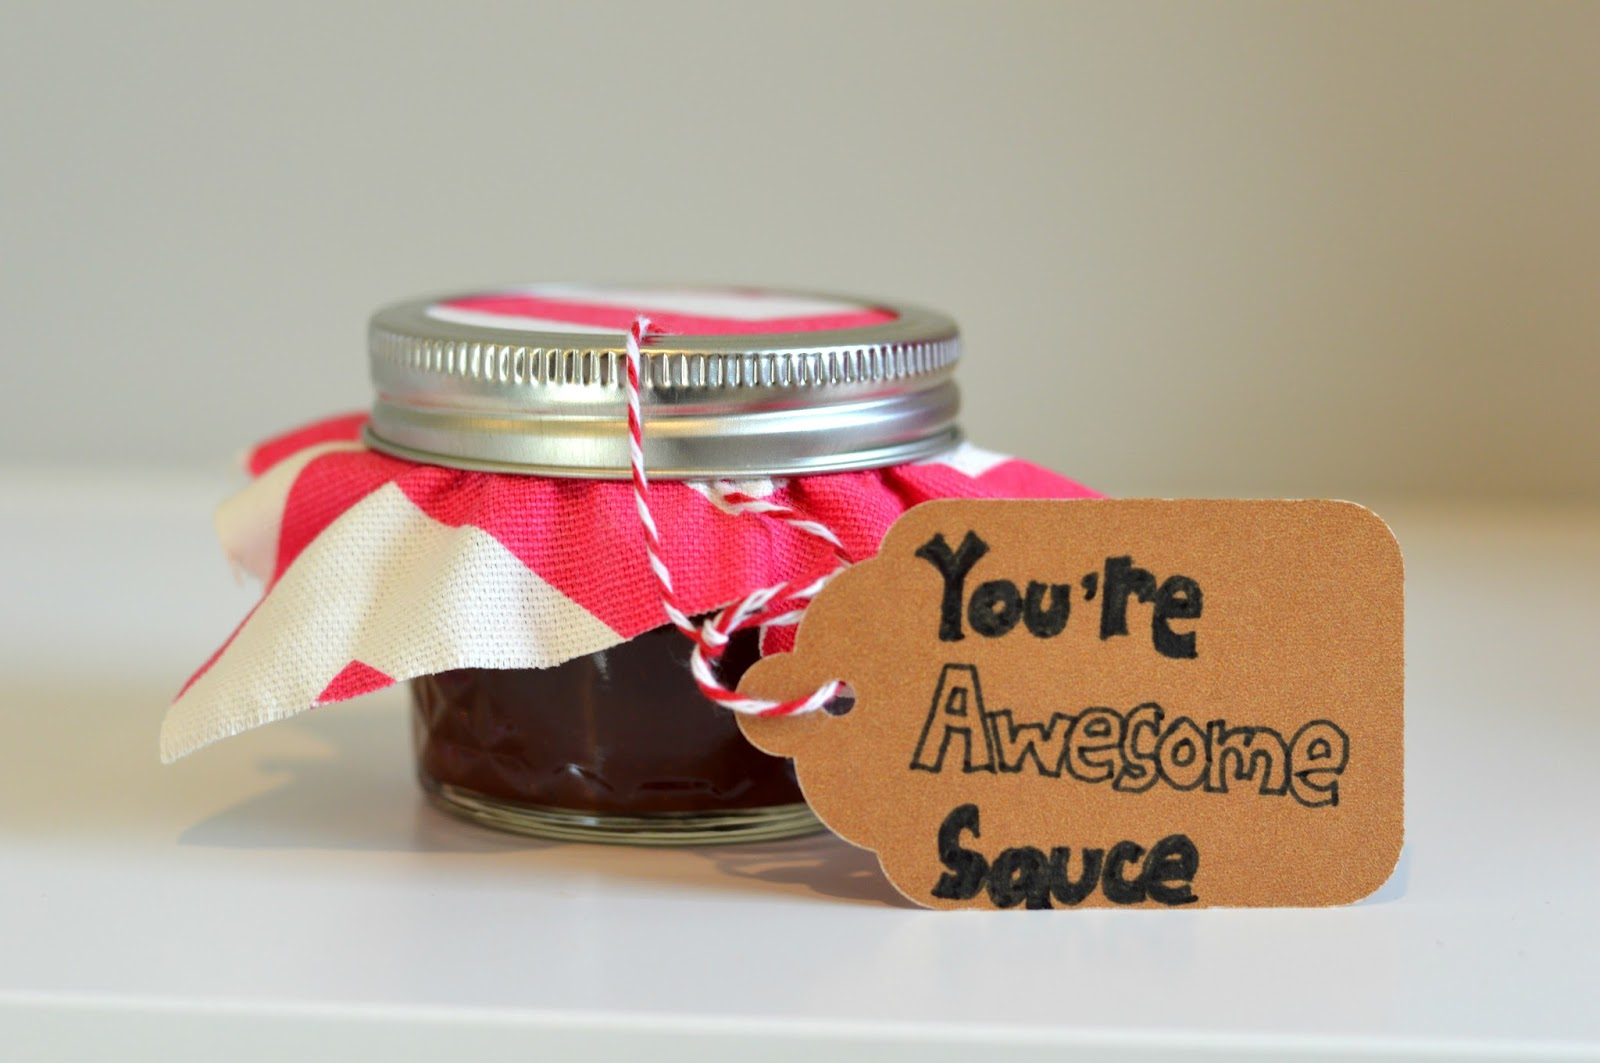 You're Awesome Sauce Homemade BBQ Sauce for Valentine's Day| all dressed up with nothing to drink...